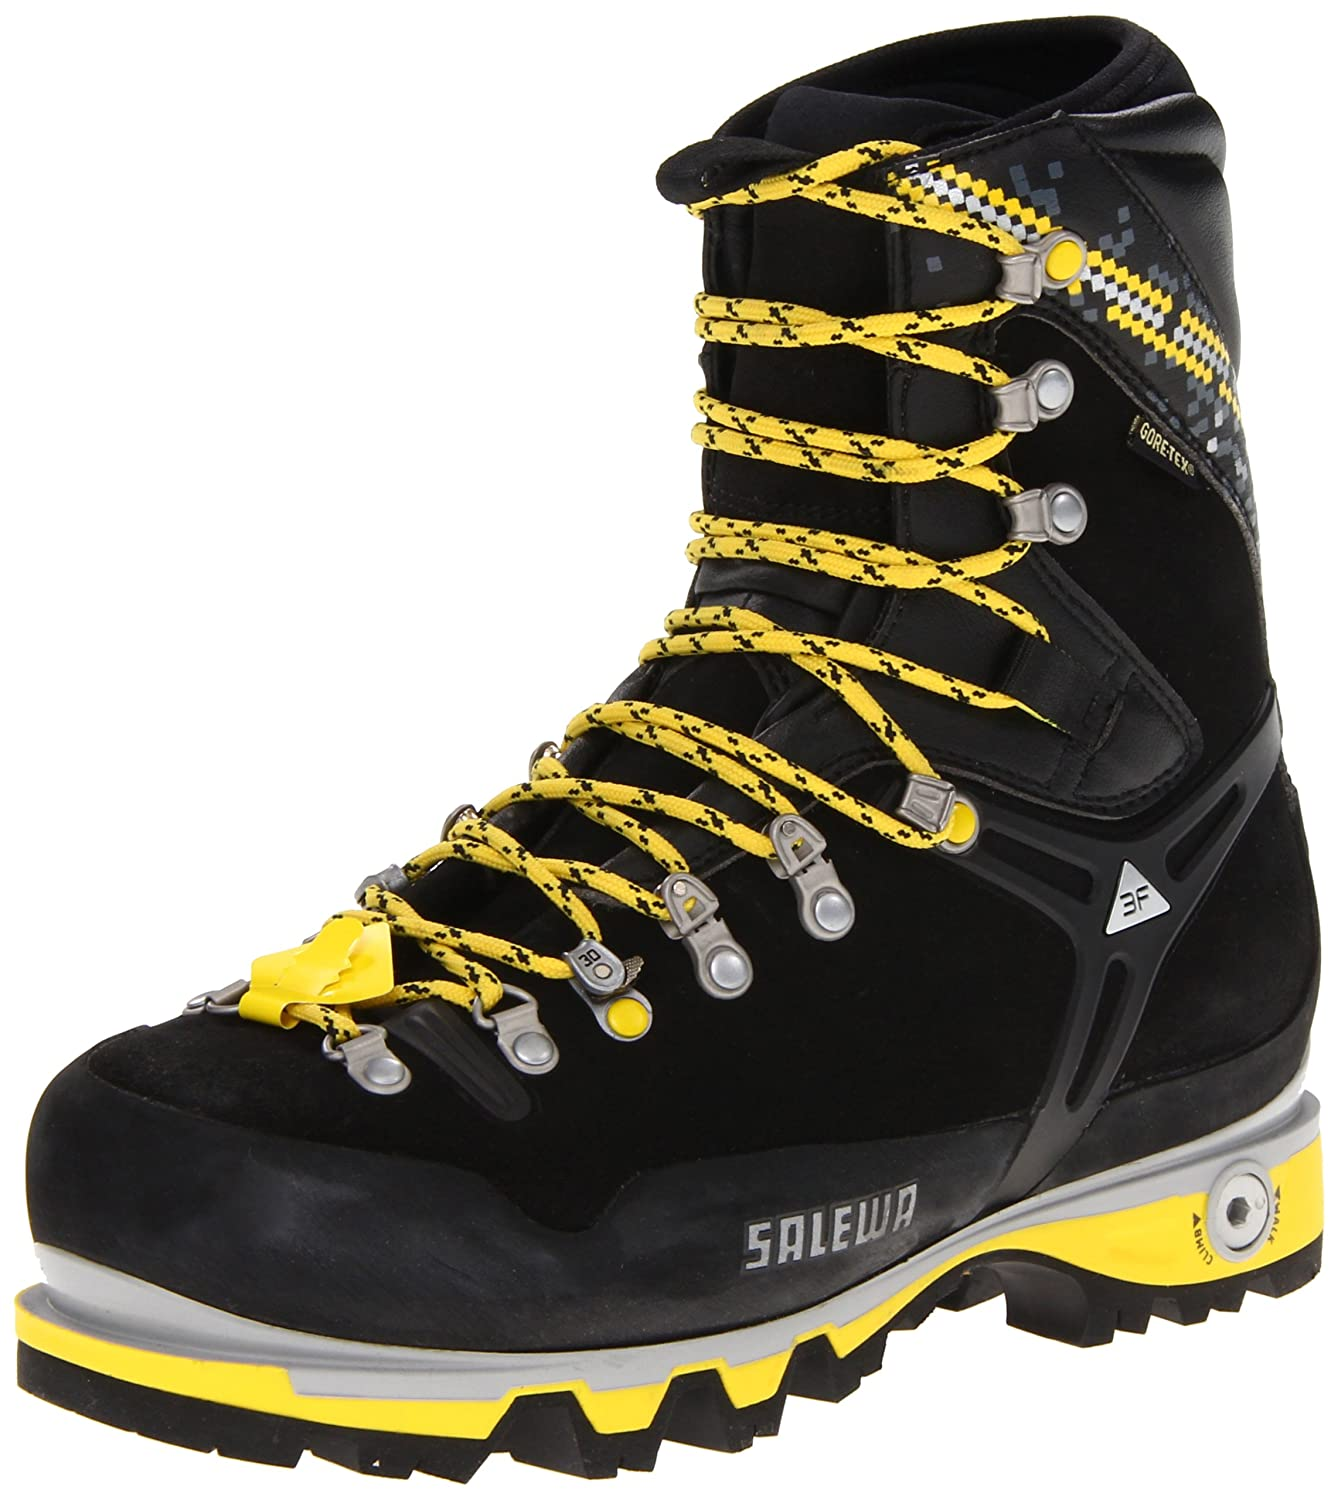 Salewa Men's Pro Guide Performance Fit Hiking Boot